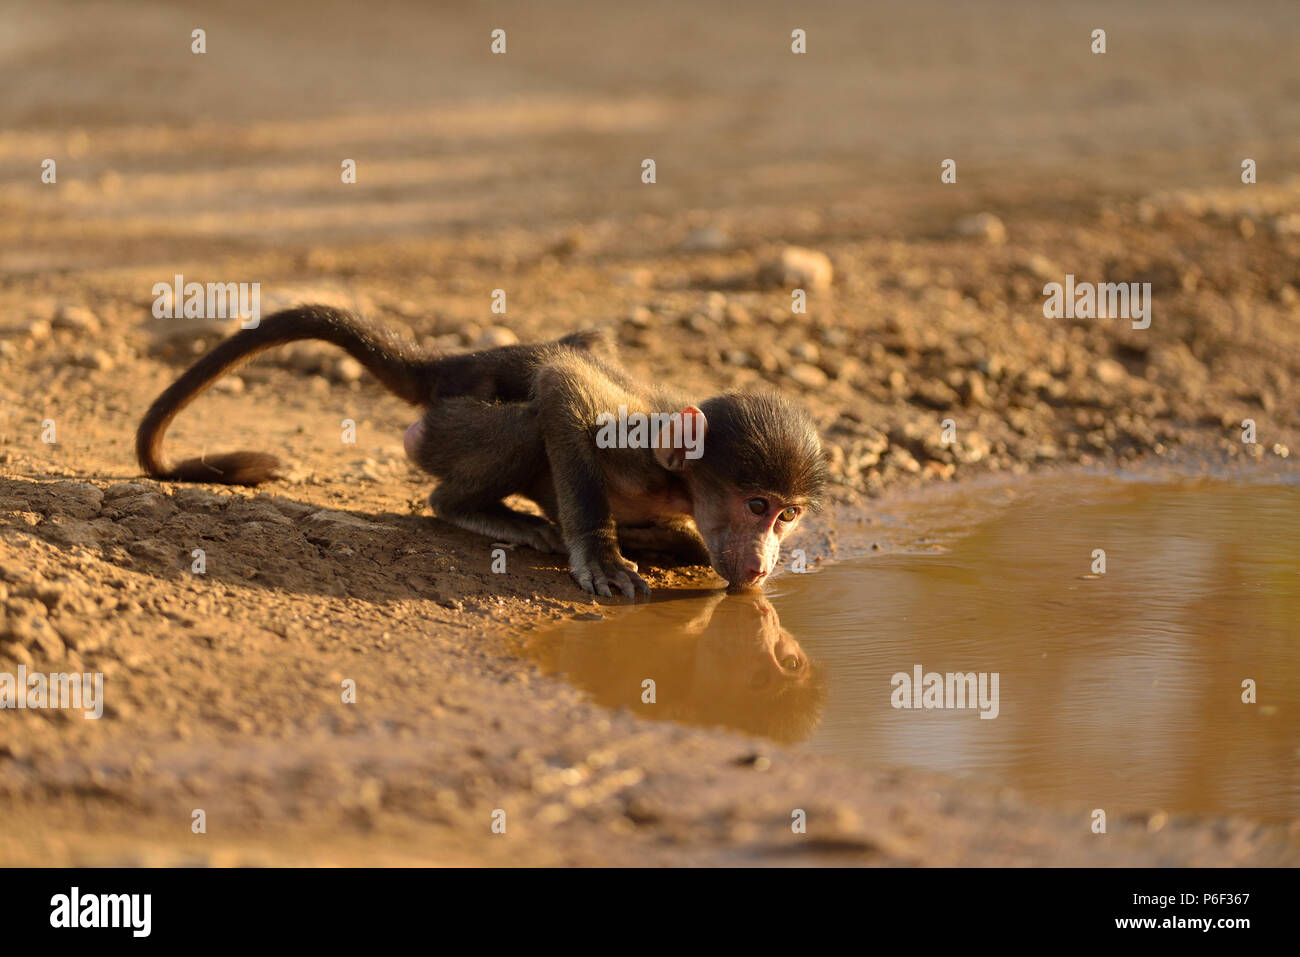 Baby baboon drinking water from a pond - Stock Image